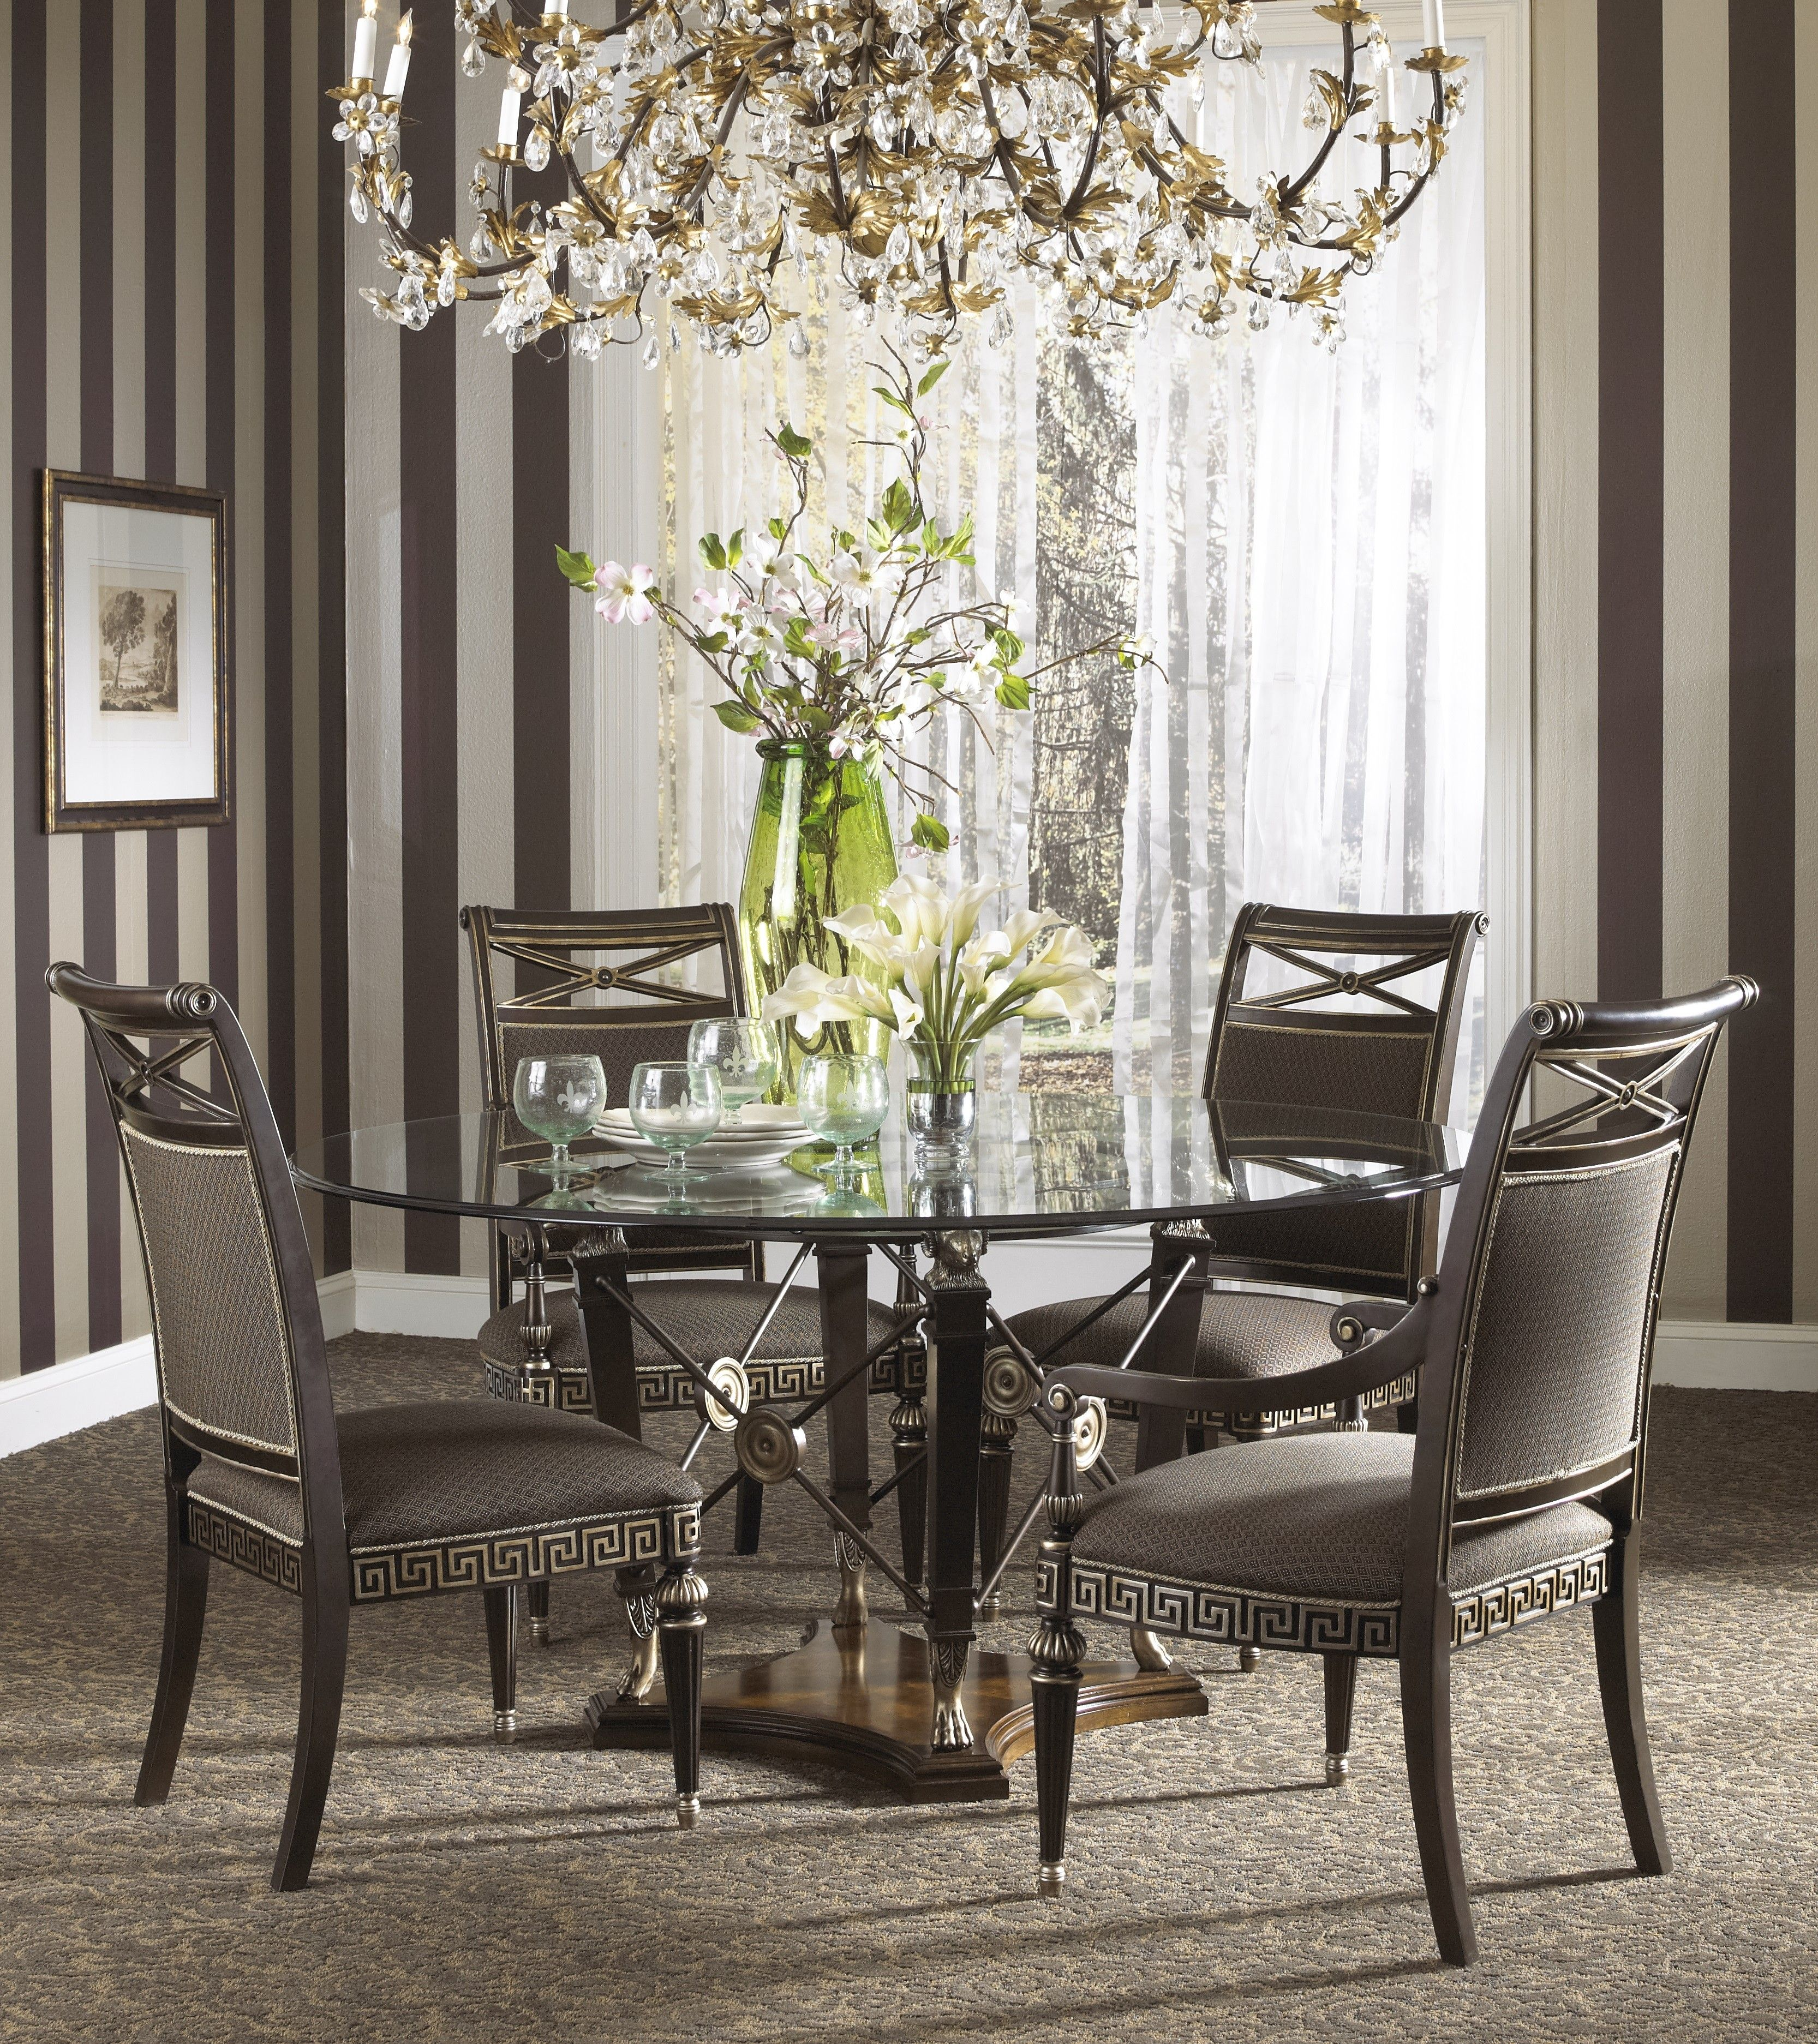 Beau Buy The Belvedere Dining Room Set With Ground Glass Table By Fine Furniture  Design From Www